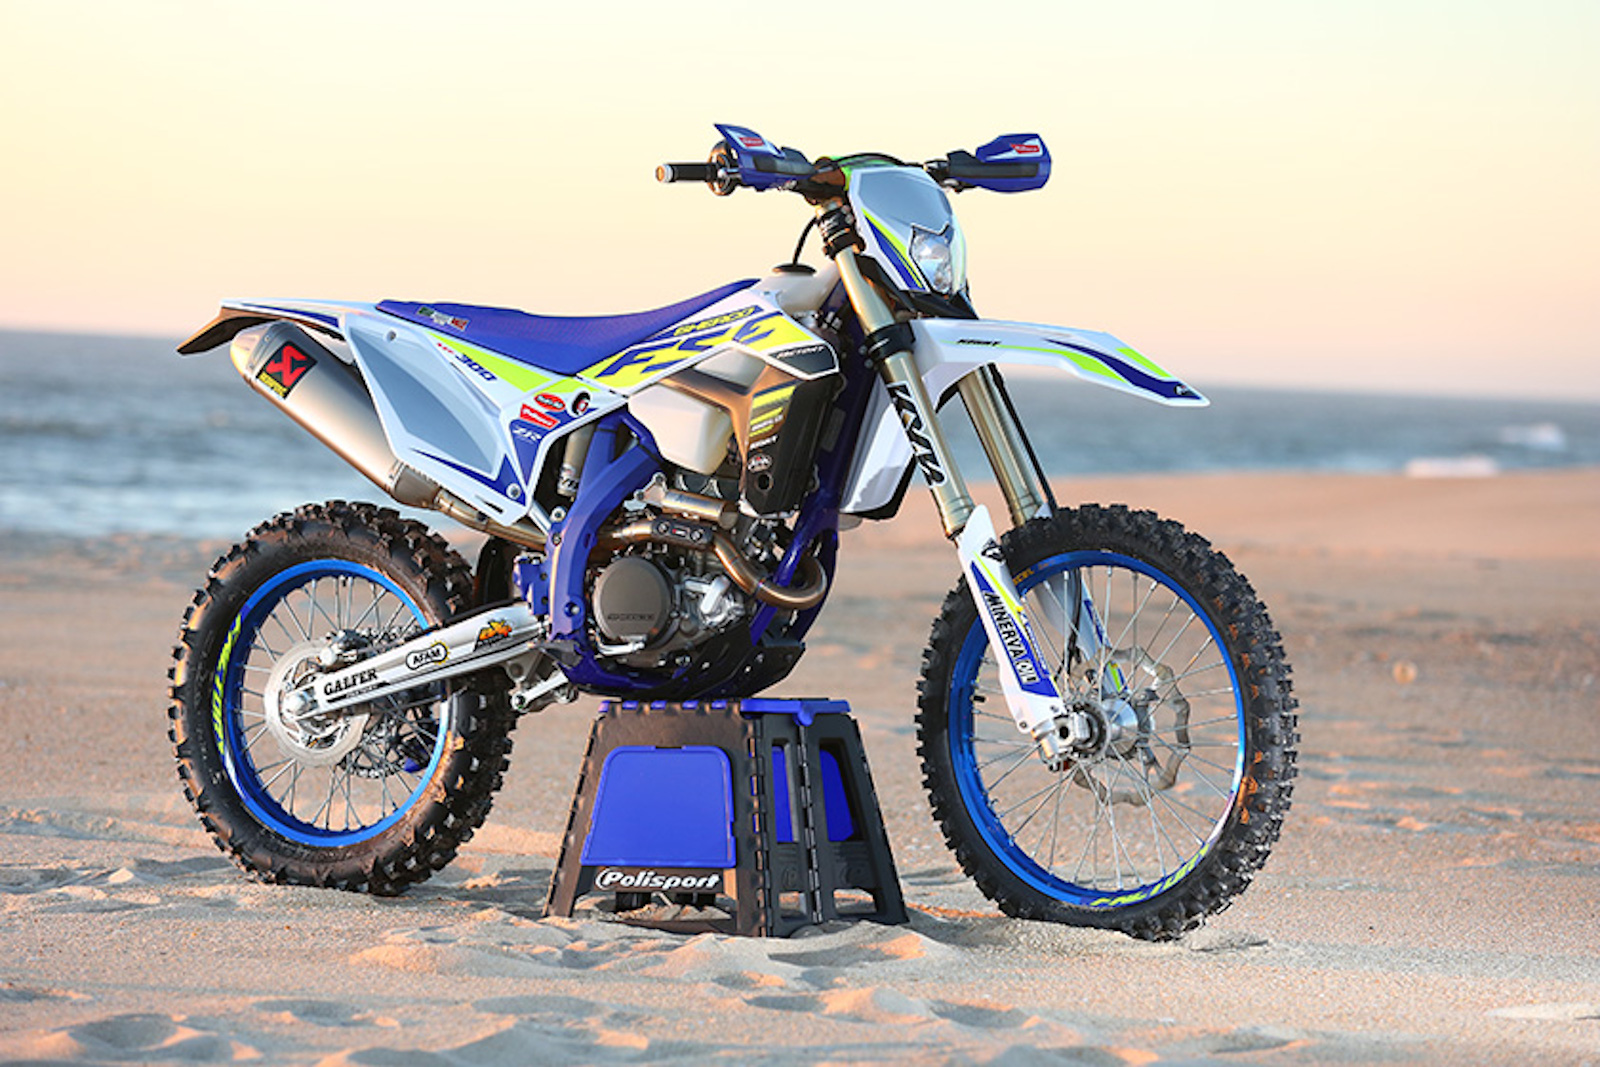 2020 Sherco enduro model range tested